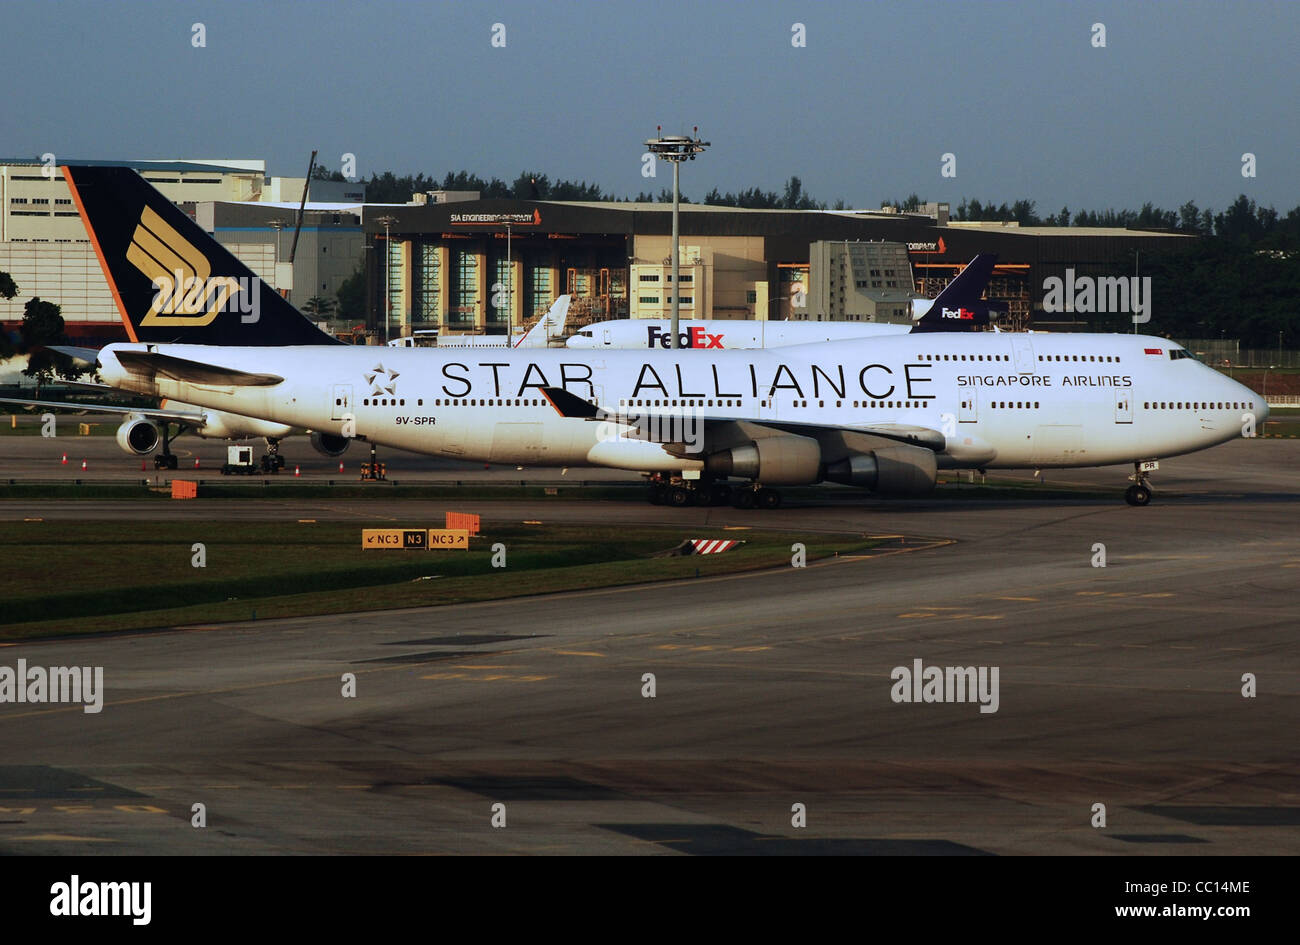 Singapore Airlines Boeing 747-4H6 (9V-SPR) taxiing at Singapore Changi Airport (SIN/WSSS). - Stock Image